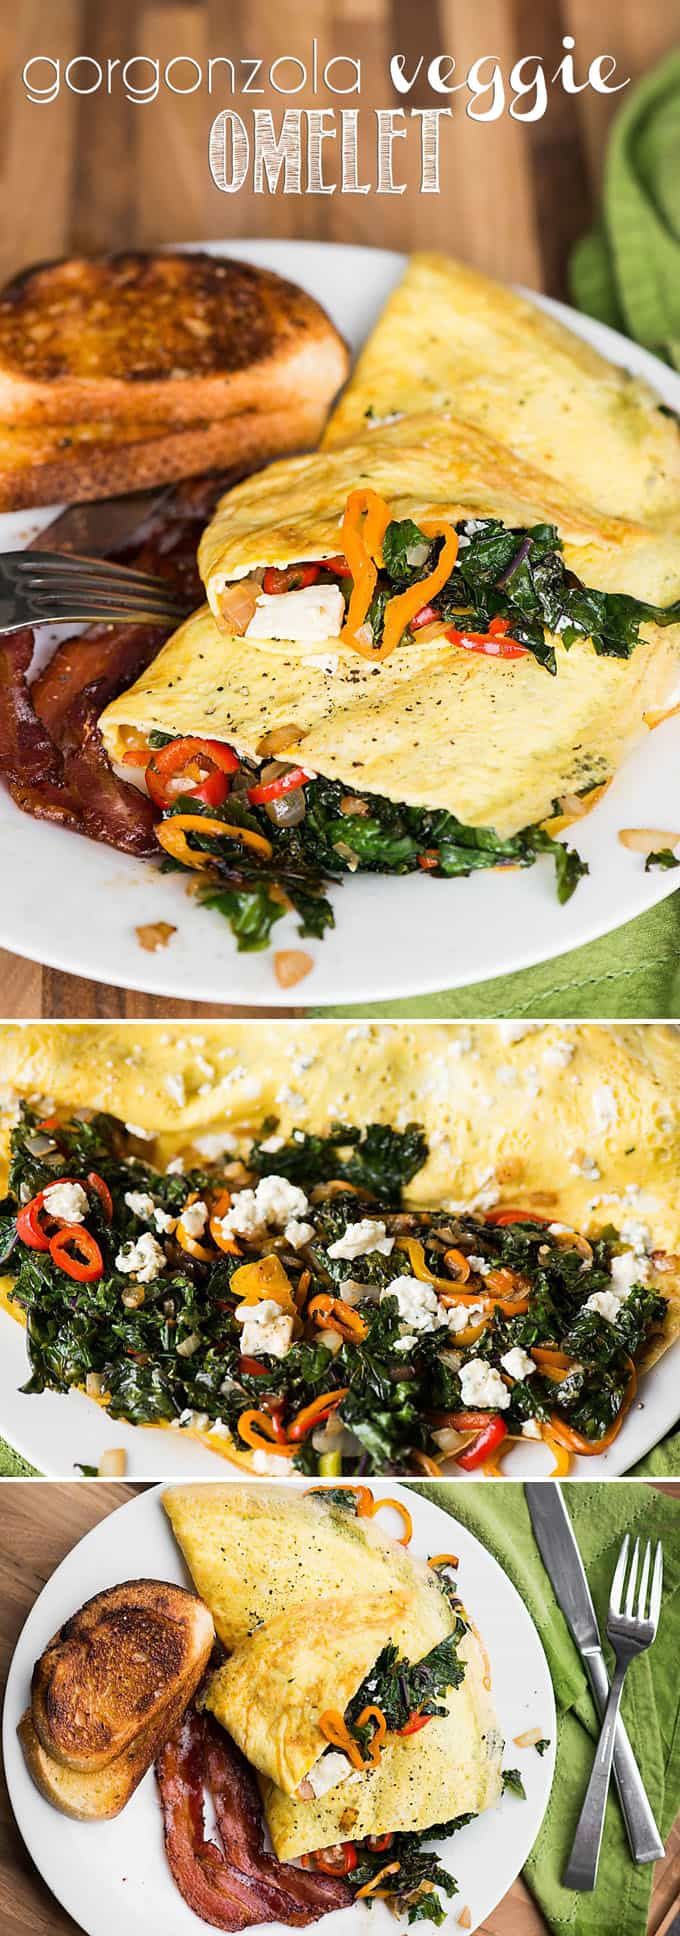 Start your morning with a healthy protein and vitamin packed breakfast. This tasty 3-egg Gorgonzola Veggie Omelet is packed with kale, peppers, and onion.